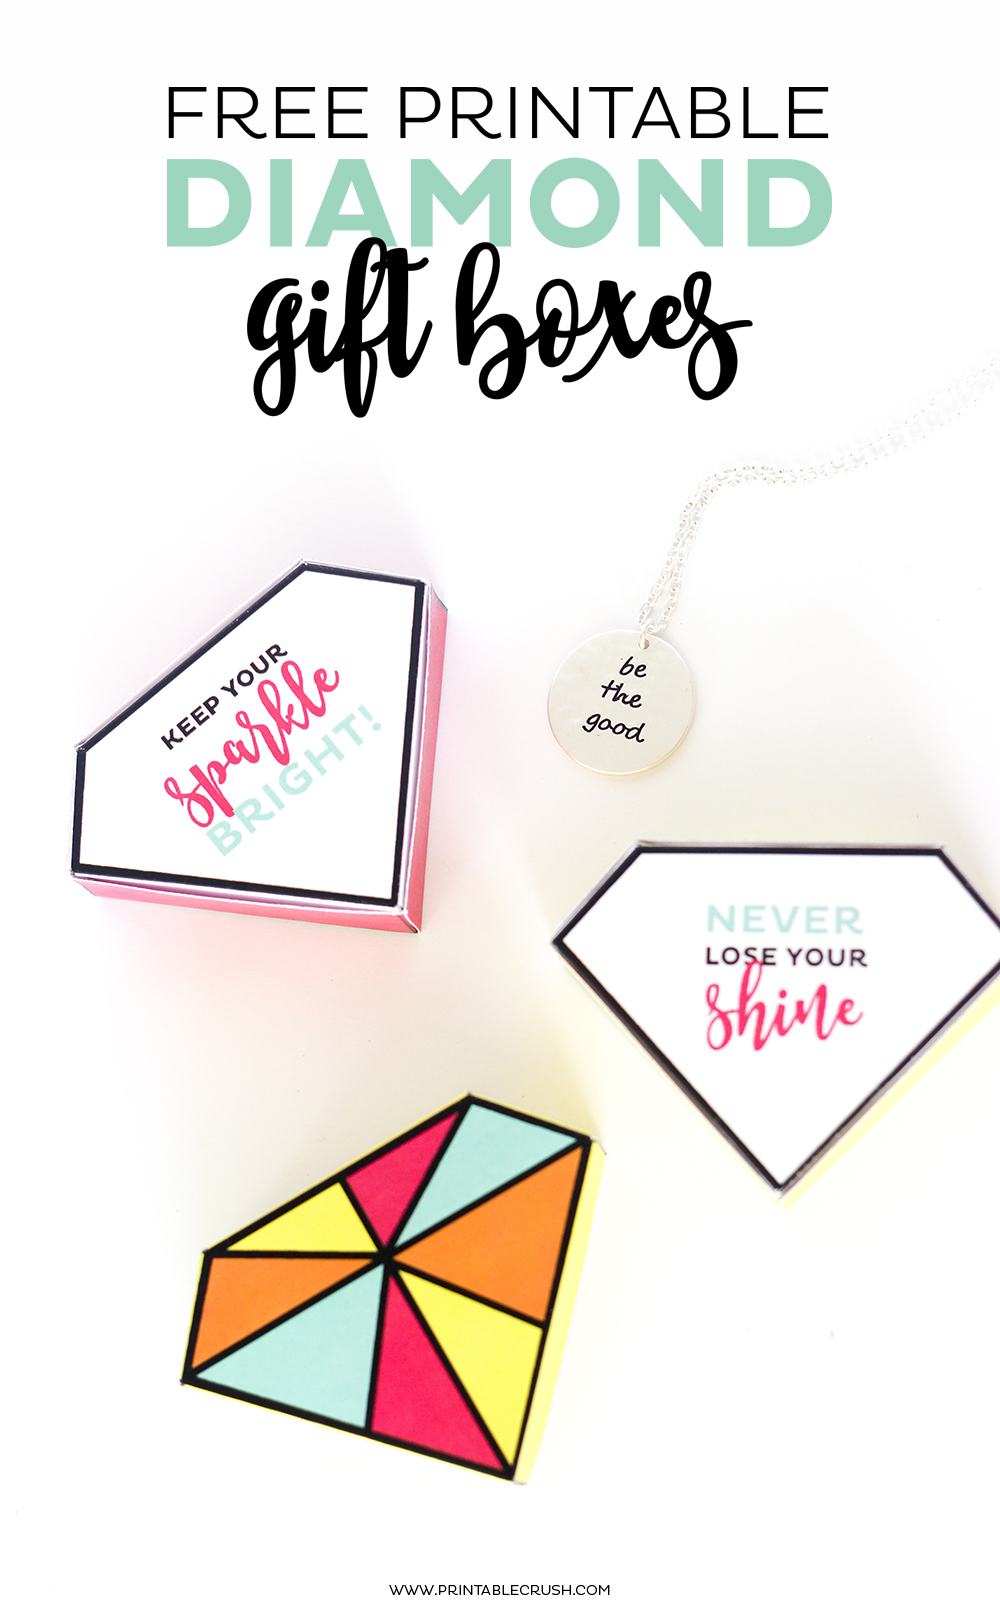 These FREE Printable Diamond Gift Boxes are the perfect packaging for jewelry! They're cute and remind your friends to radiate and sparkle!